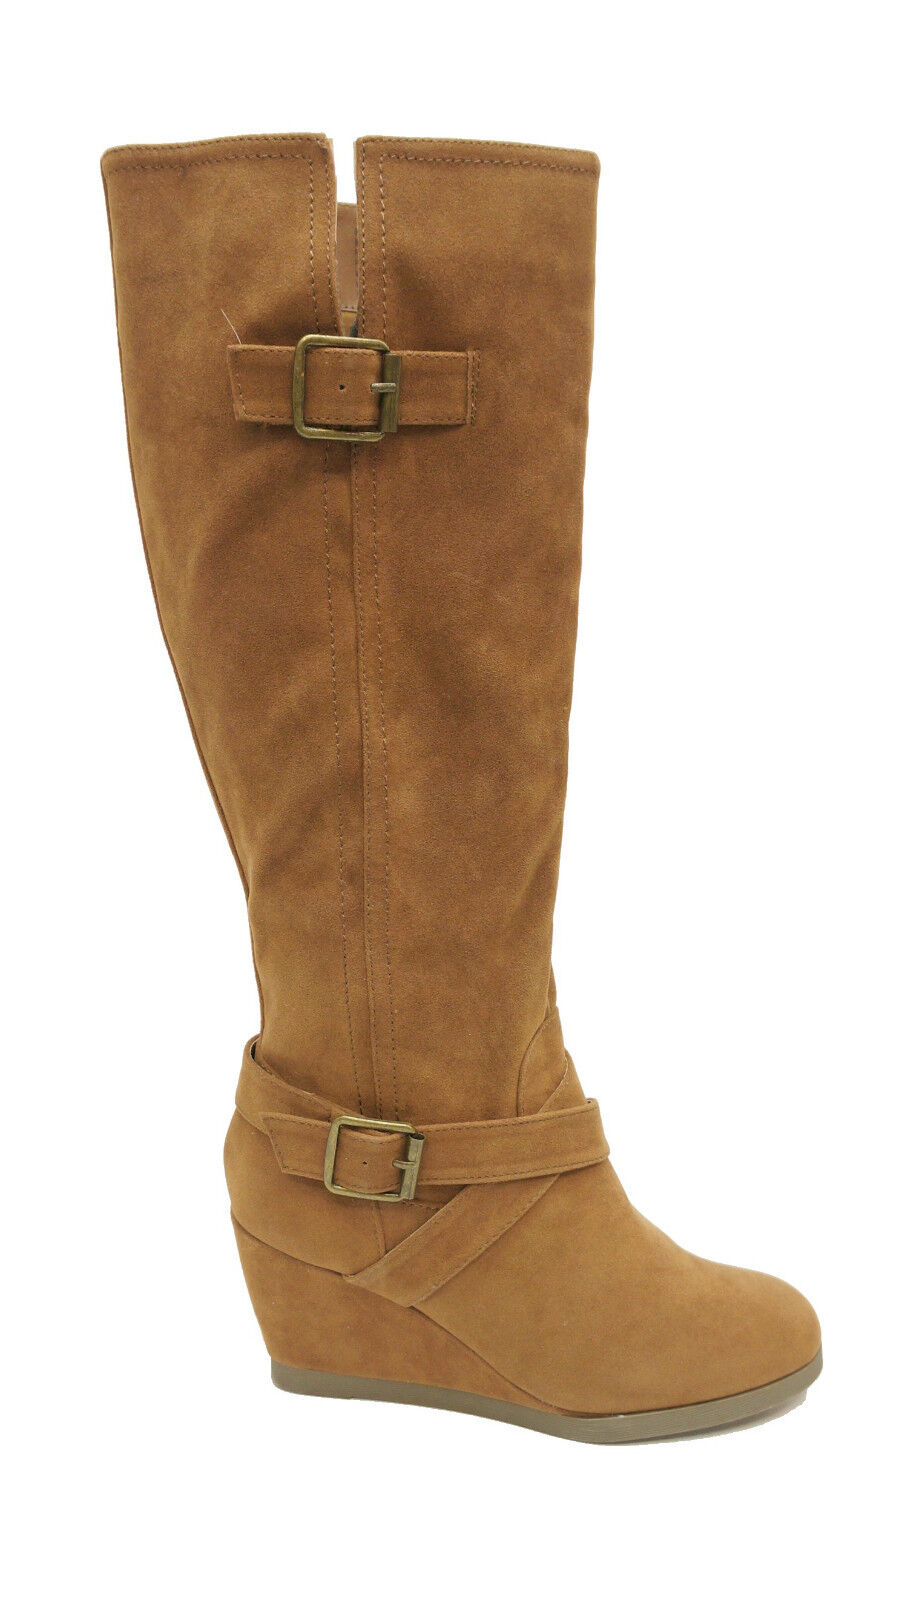 Shi by Journeys Cognac Faux Suede Knee High DUSTIN Tall Boots Women's shoes